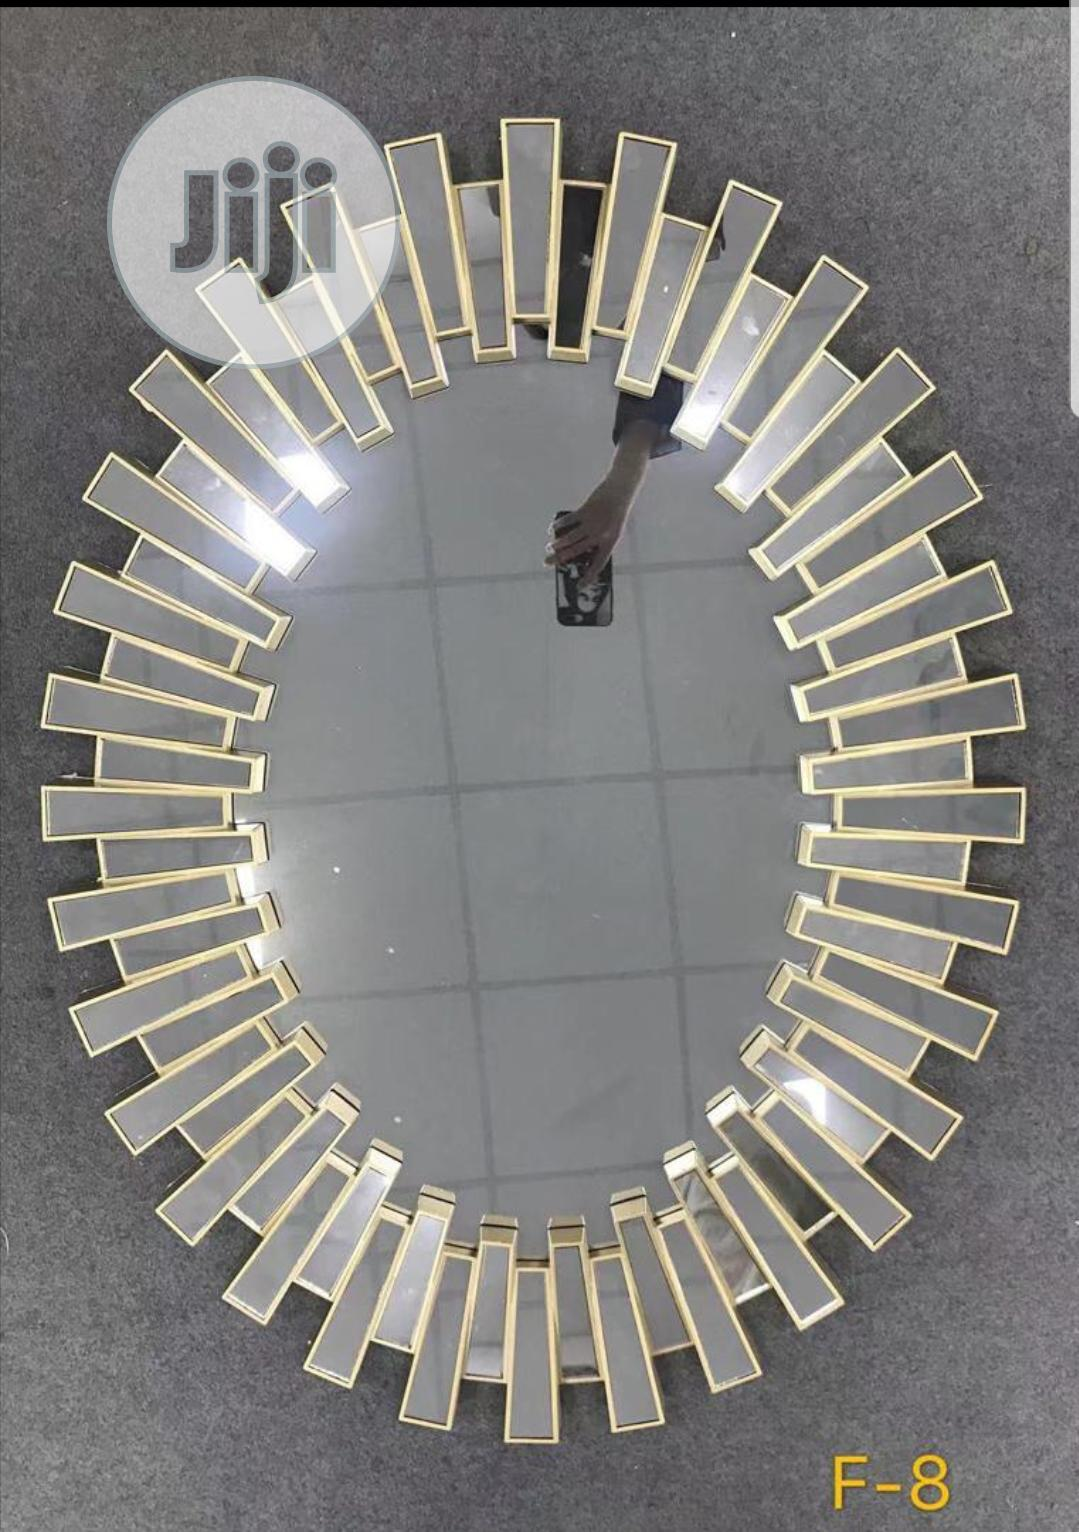 Oval Gold Venetian Wall Mirror In Lekki Phase 2 Home Accessories Tintas Sense Designs Jiji Ng For Sale In Lekki Phase 2 Buy Home Accessories From Tintas Sense Designs On Jiji Ng